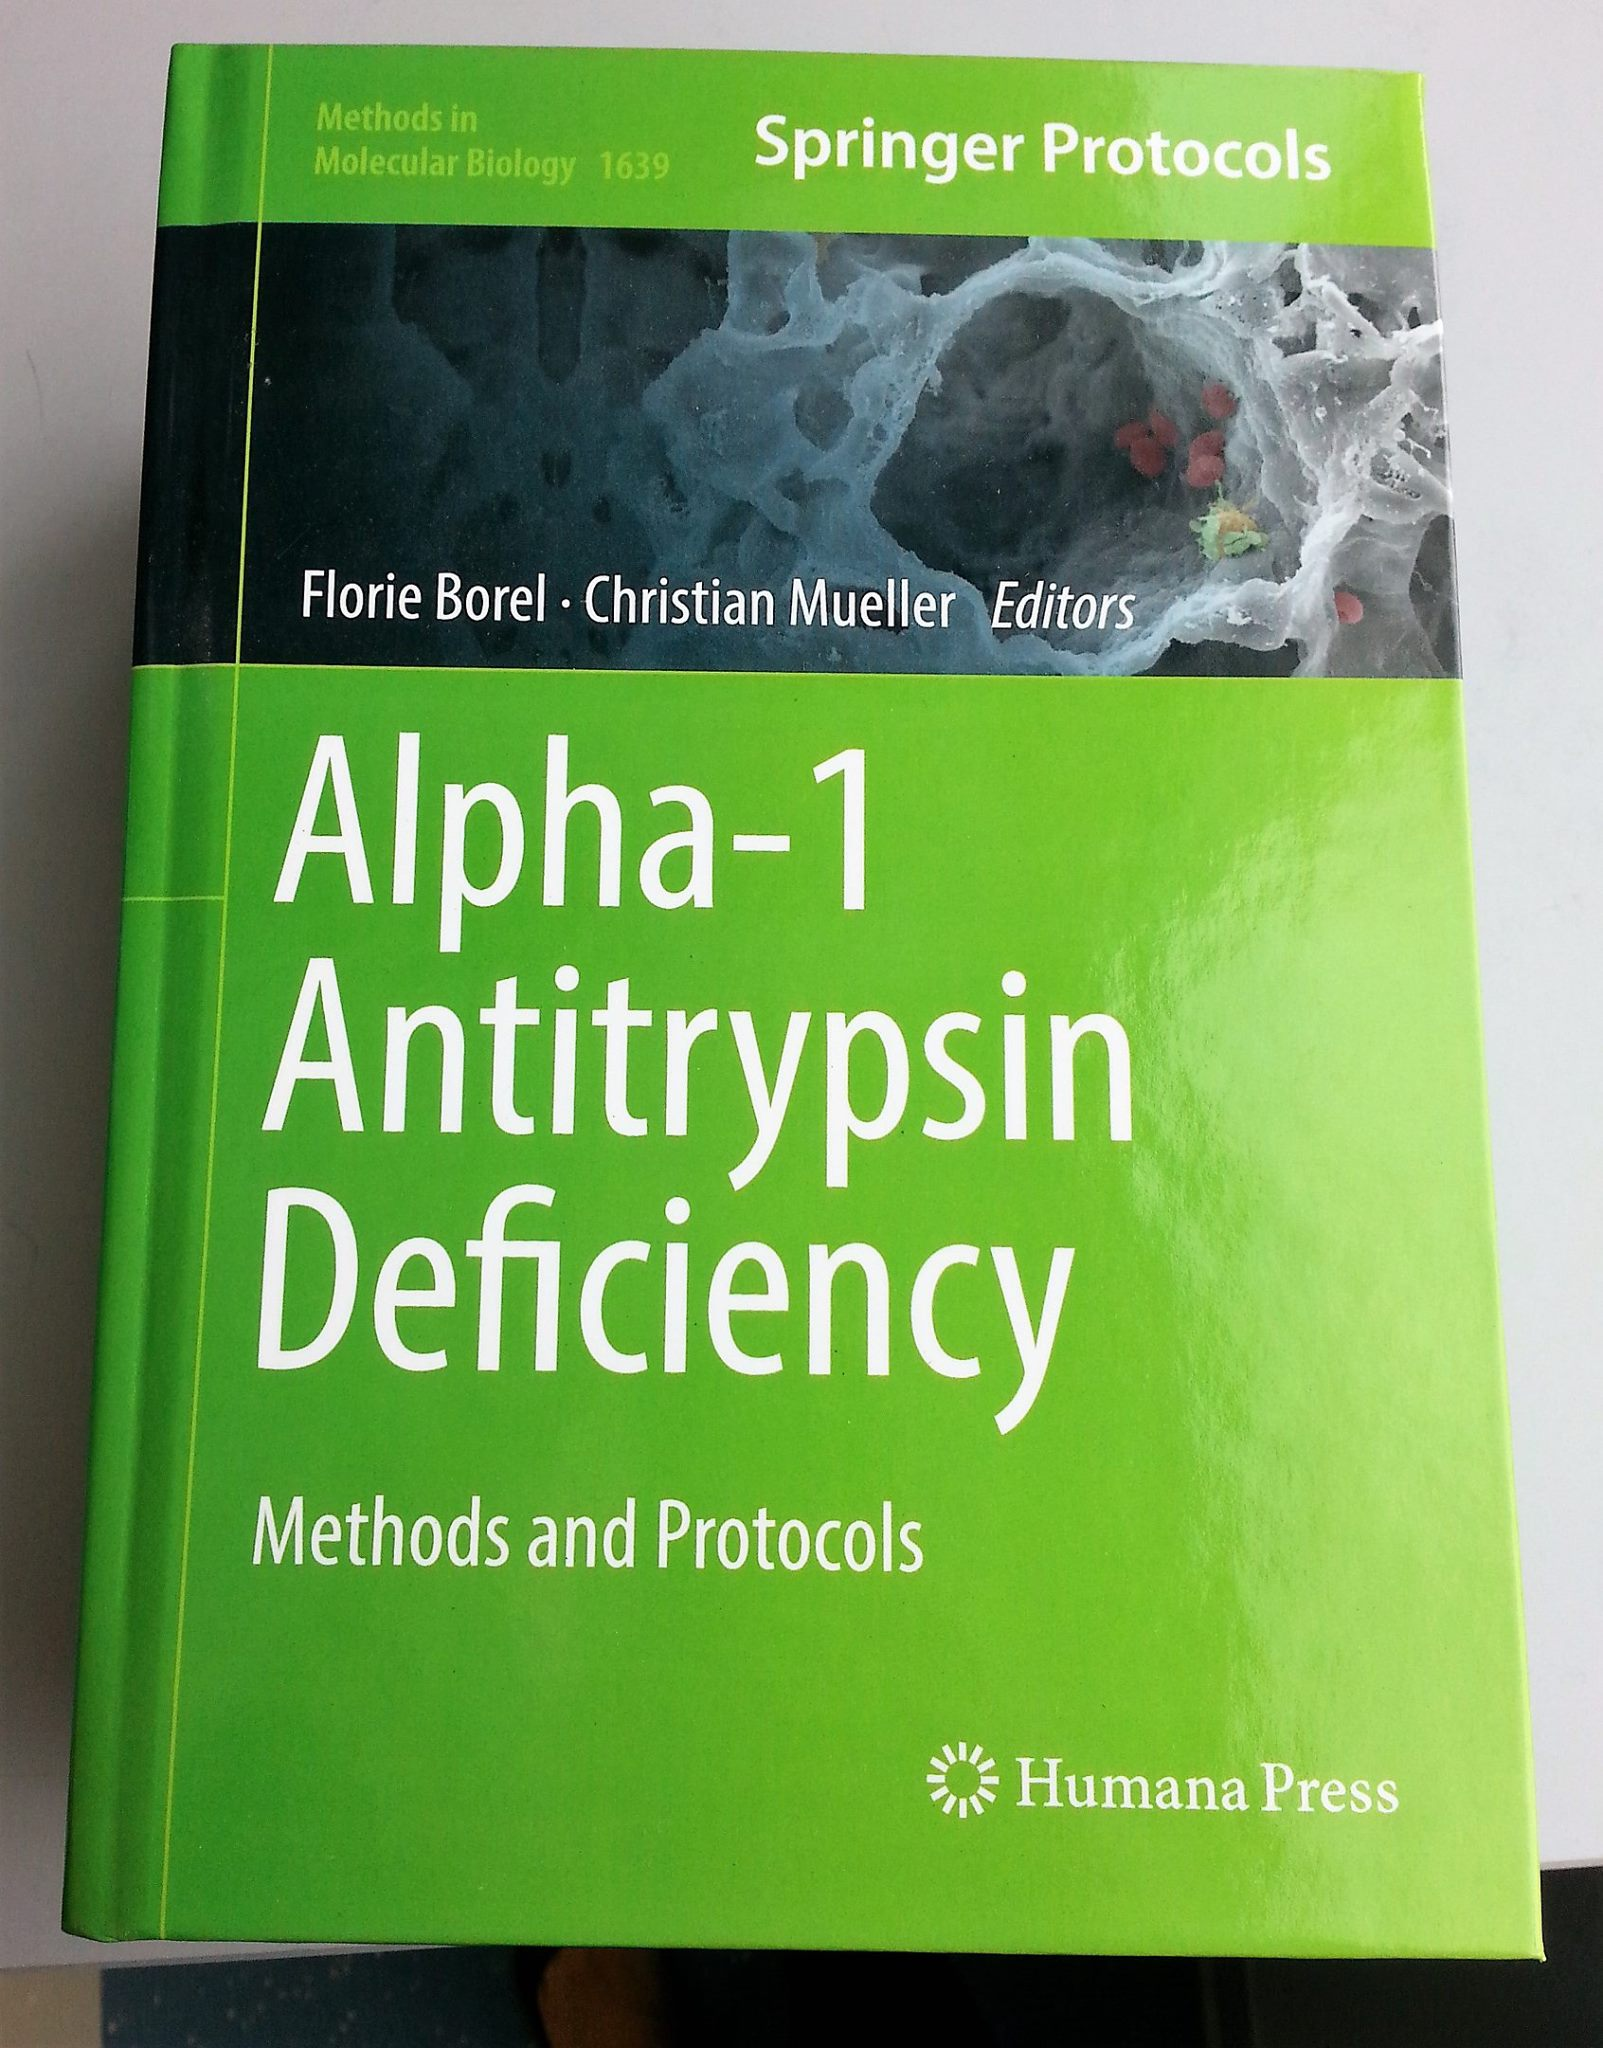 Alpha-1 antitrypsin deficiency methods protocols Springer Nature Borel Mueller